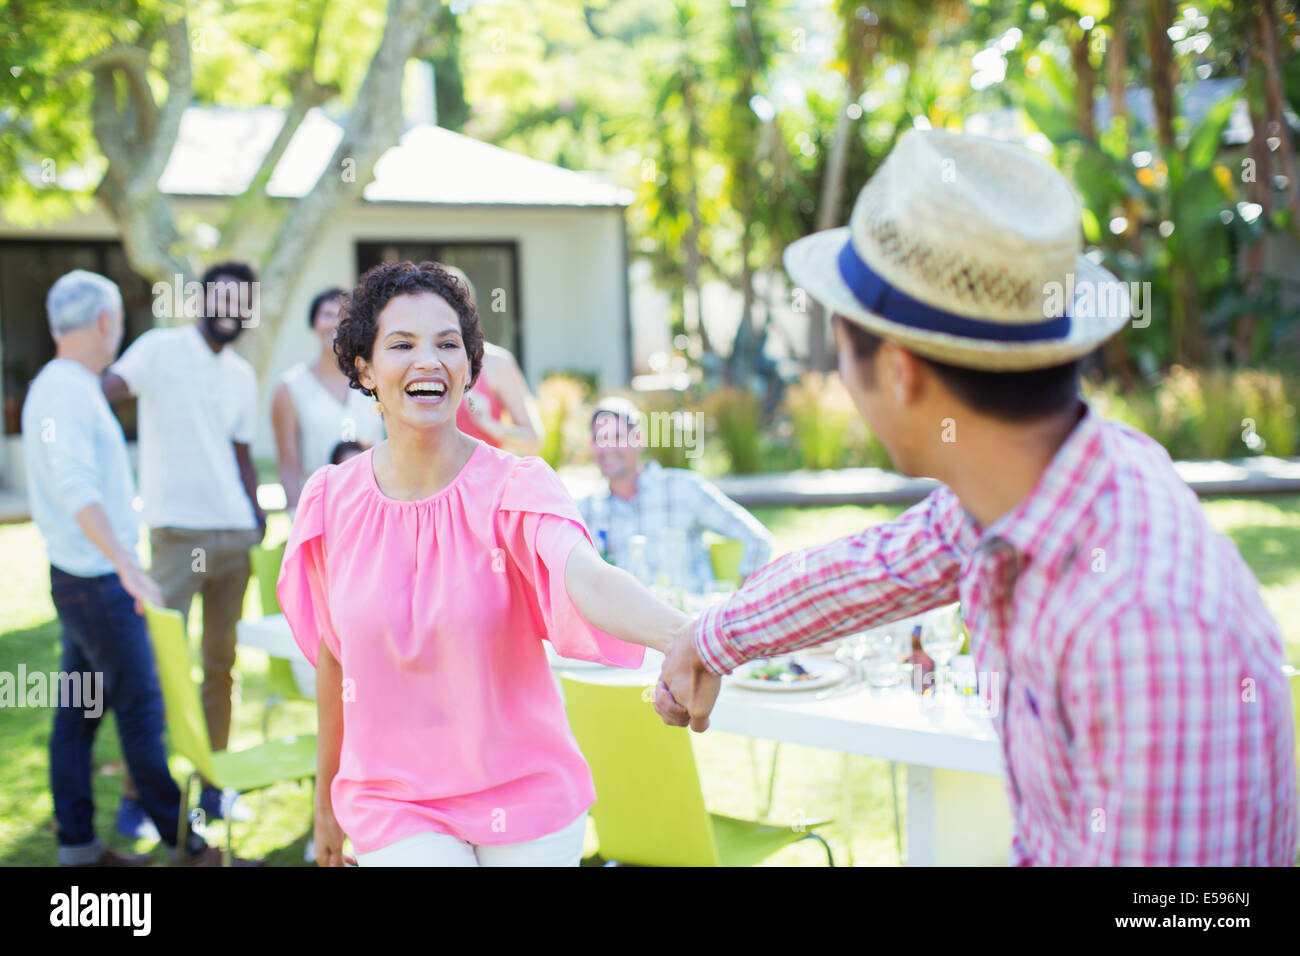 Couple dancing at party - Stock Image